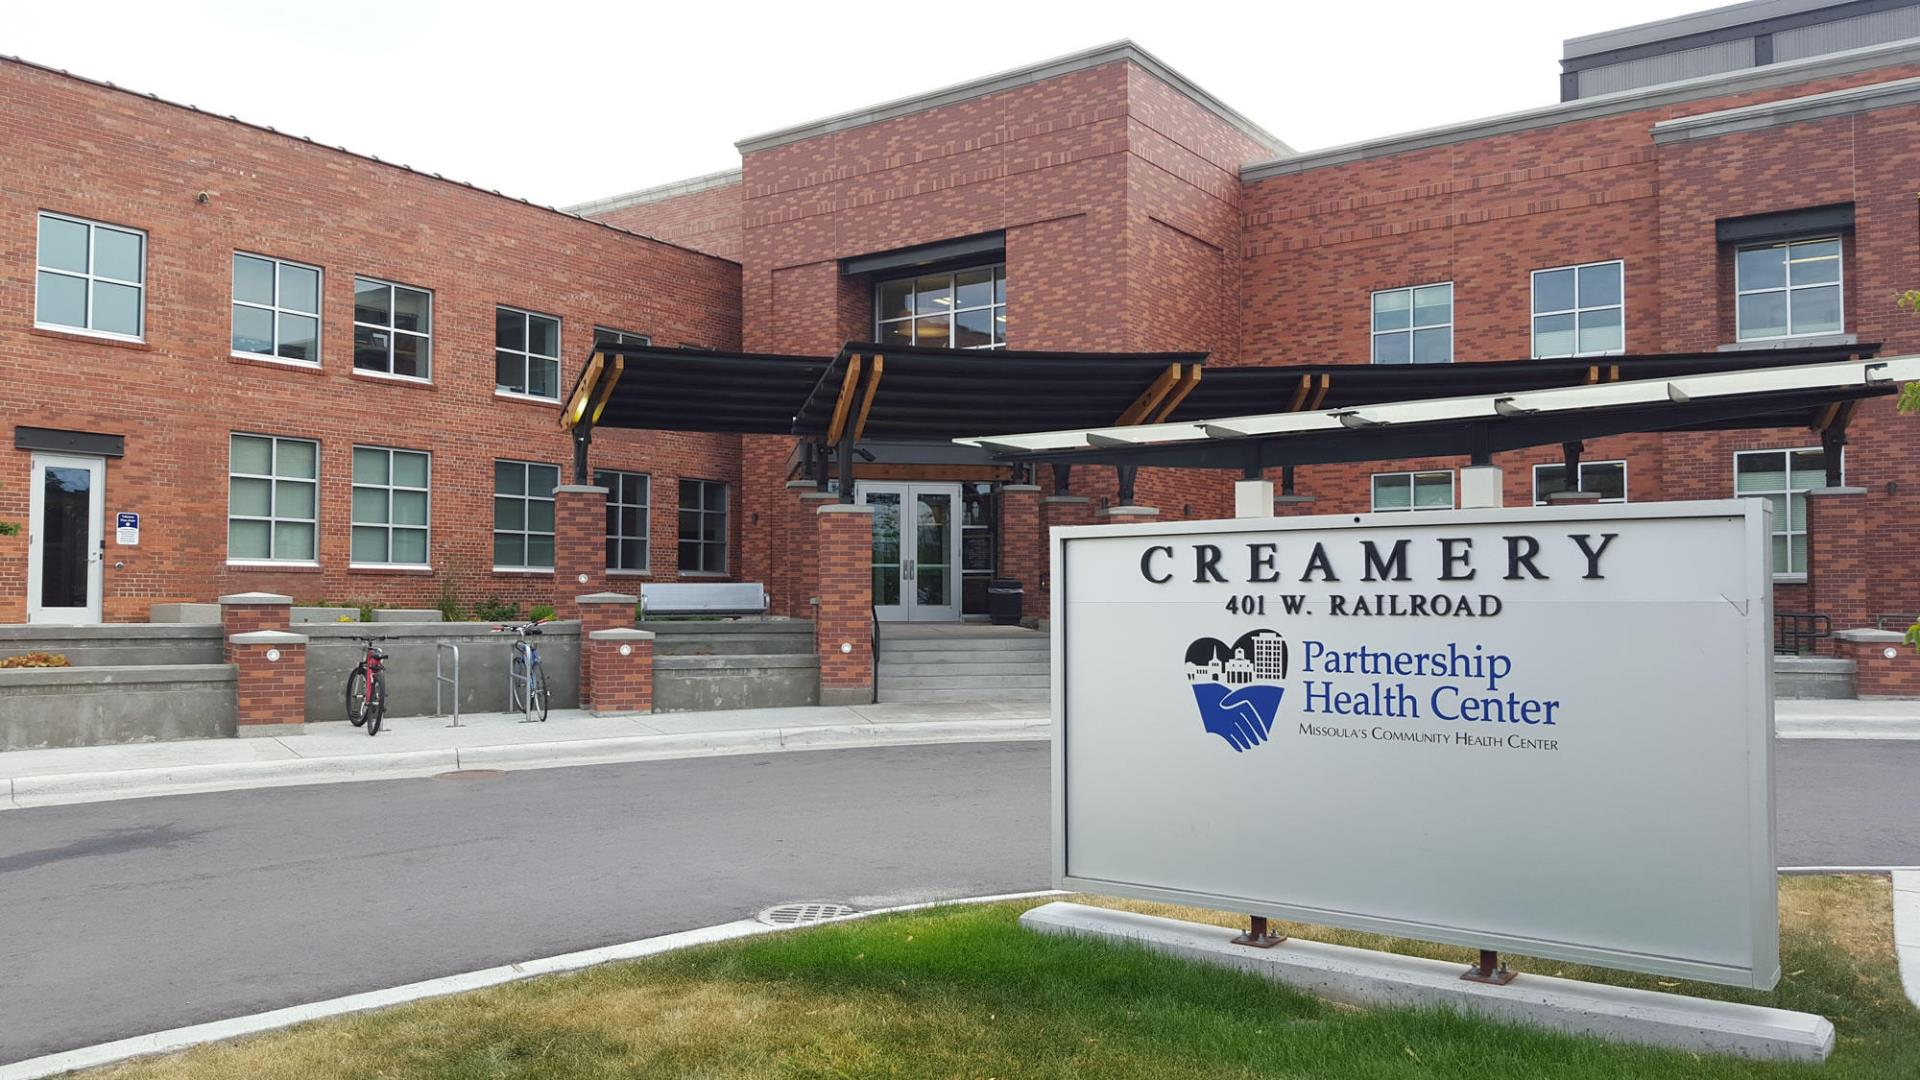 PHC Creamery Building located at 401 W. Railroad Street in Missoula.